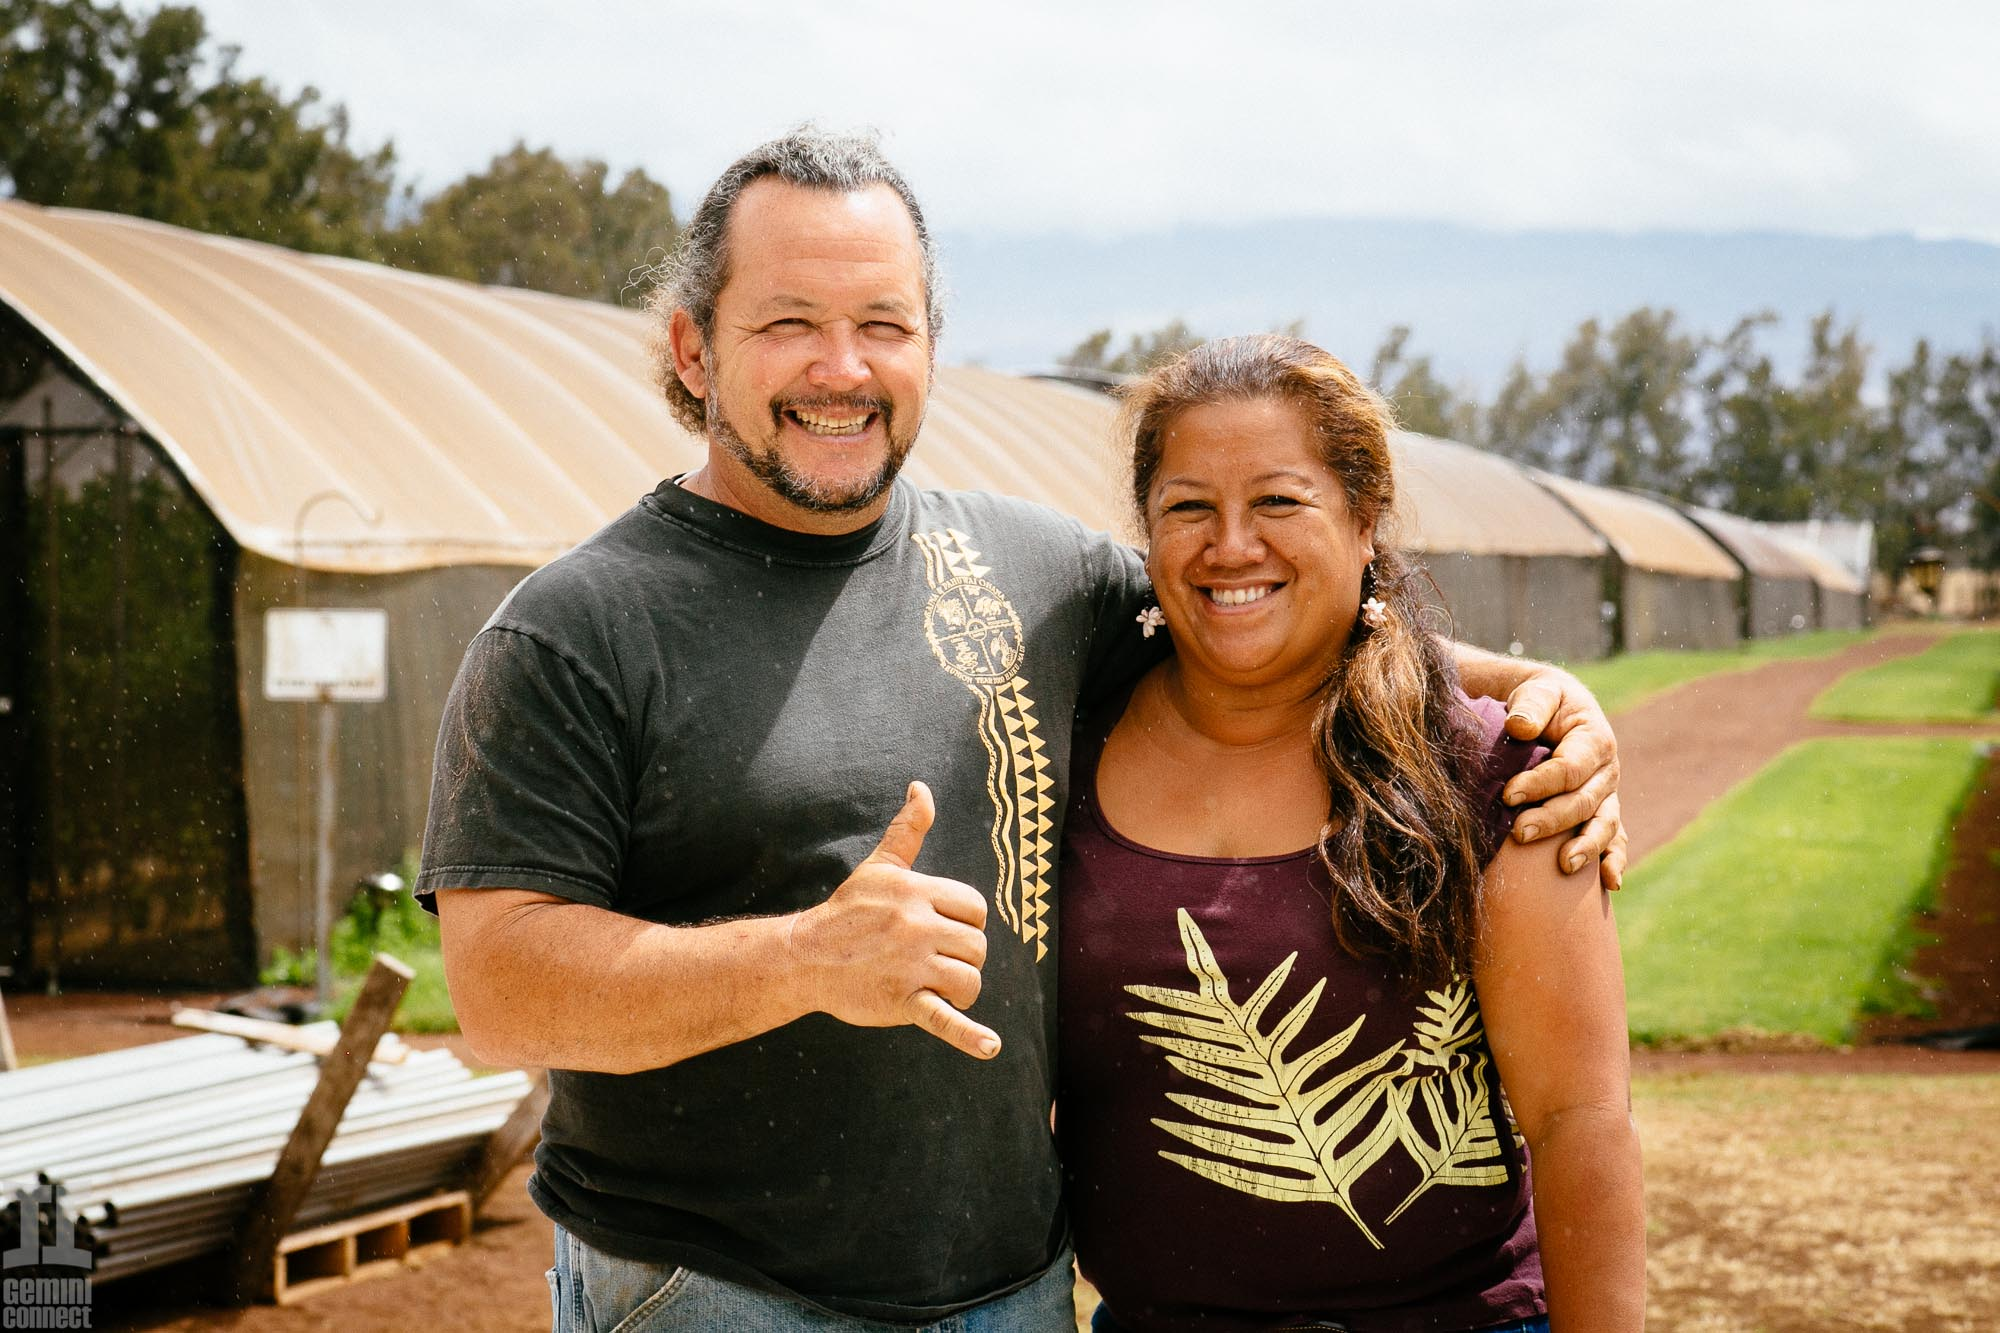 Mike and Tricia Hodson of Wow tomato farms on the Big Island of Hawaii.